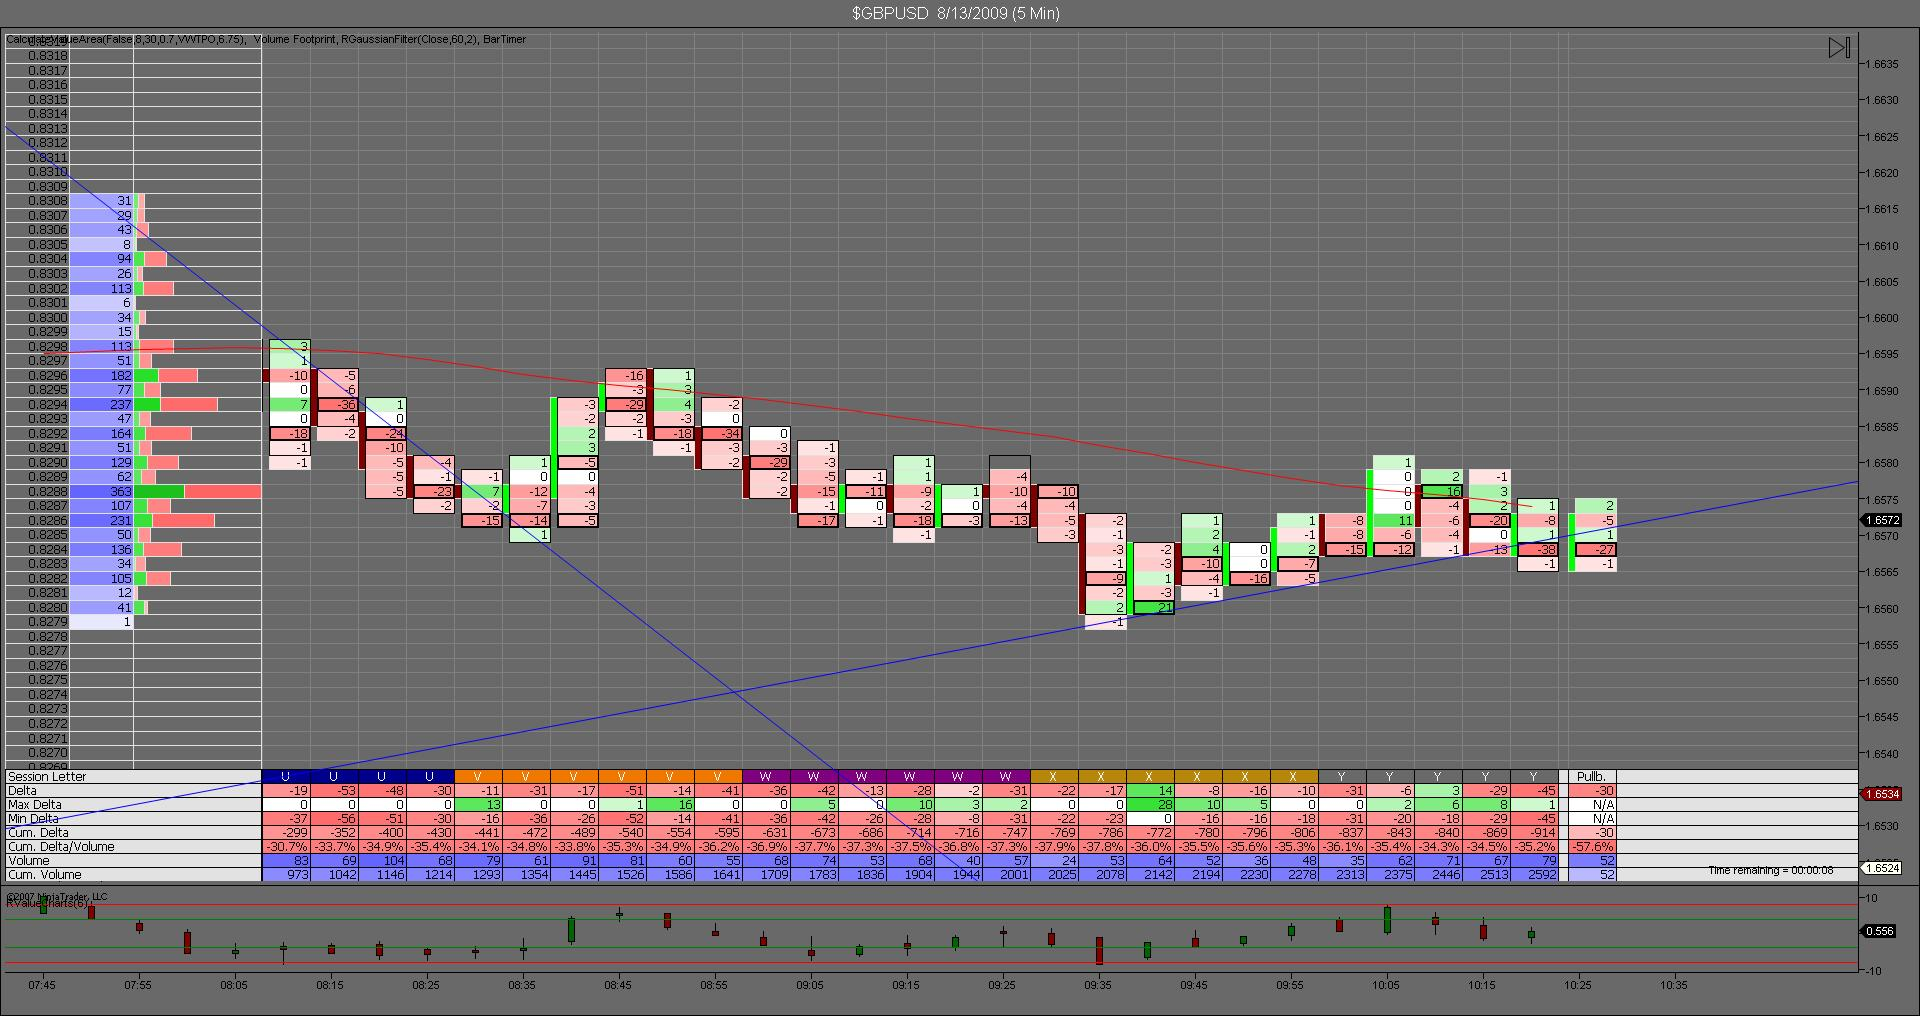 Forex historical data with volume